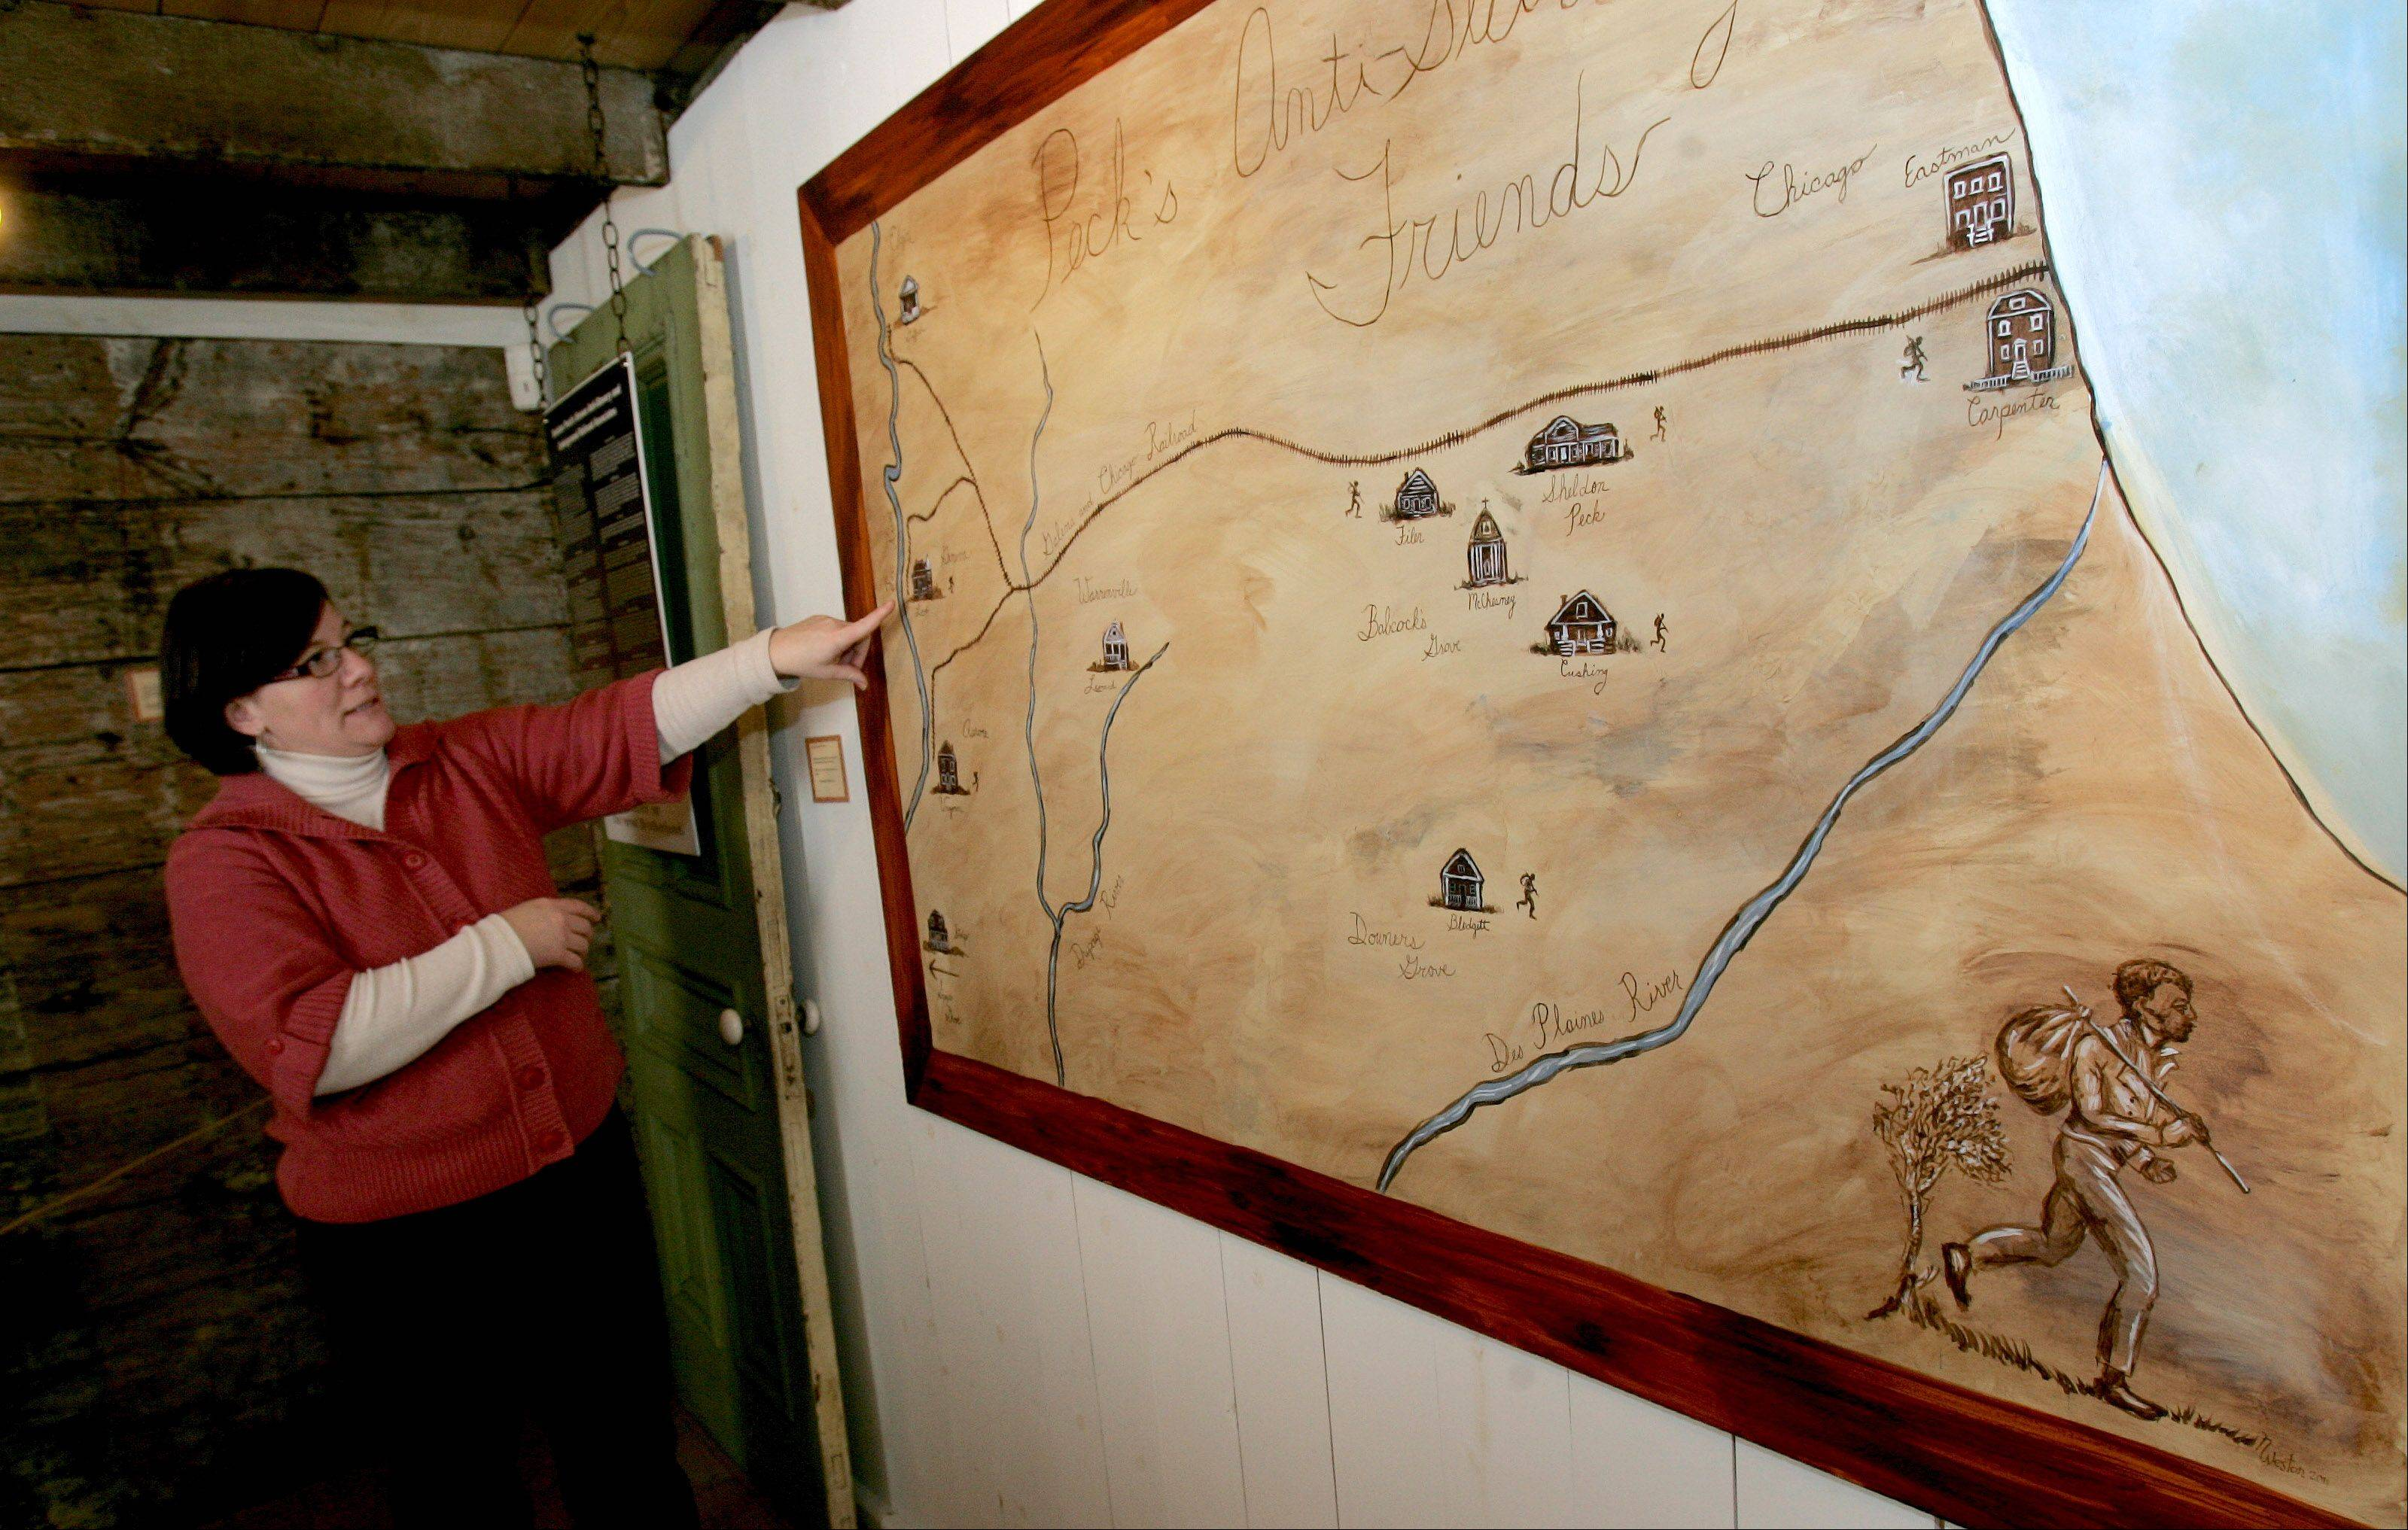 Jeanne Schultz Angel, executive director of the Lombard Historical Society, examines a map depicting northern Illinois sites on the Underground Railroad.